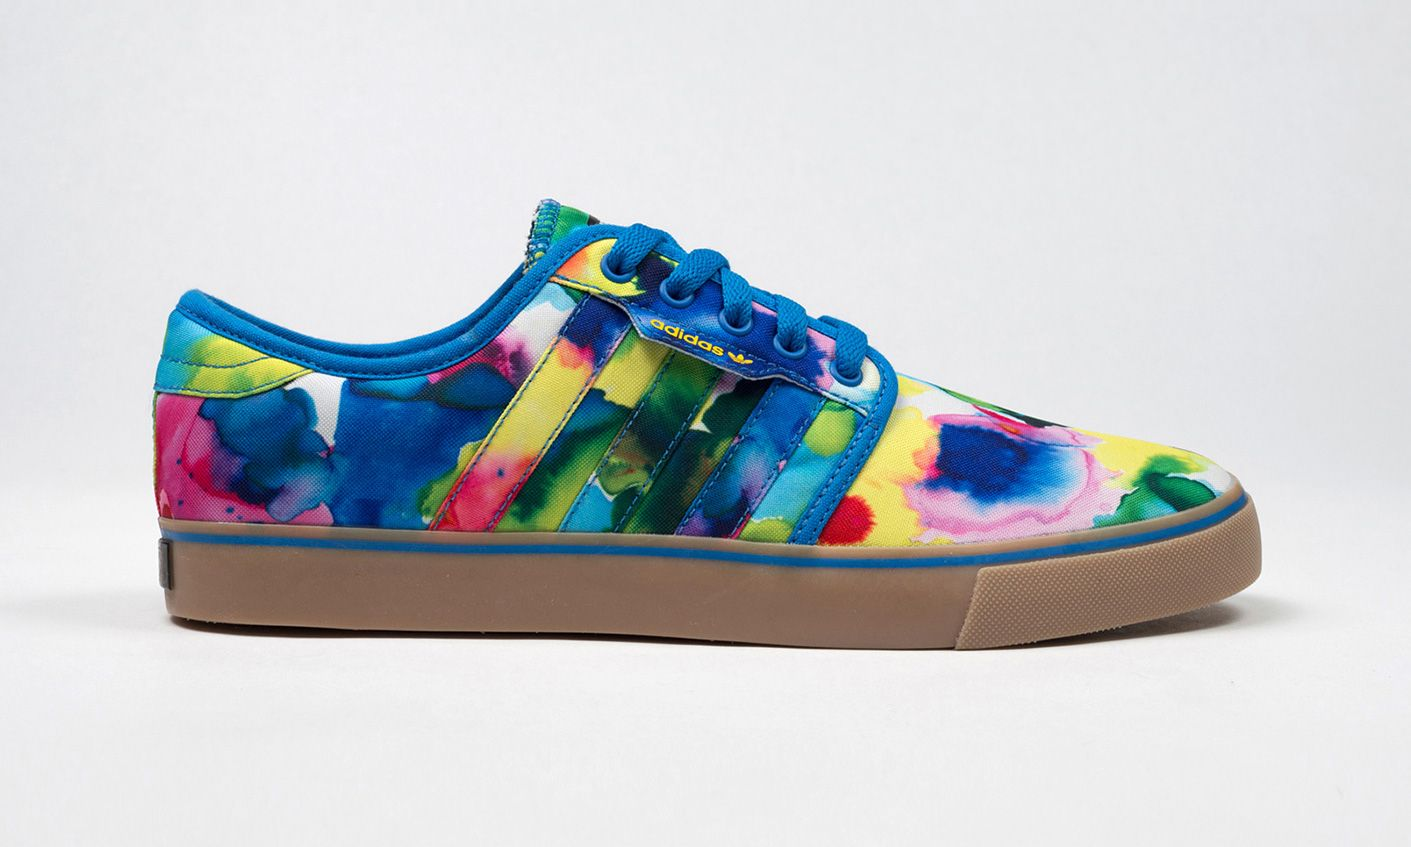 low priced ad556 4f7a6 adidas and HVW8 have announced the release of new artwork on Seely and Adi- Ease styles from Kevin Lyons and Jean André.